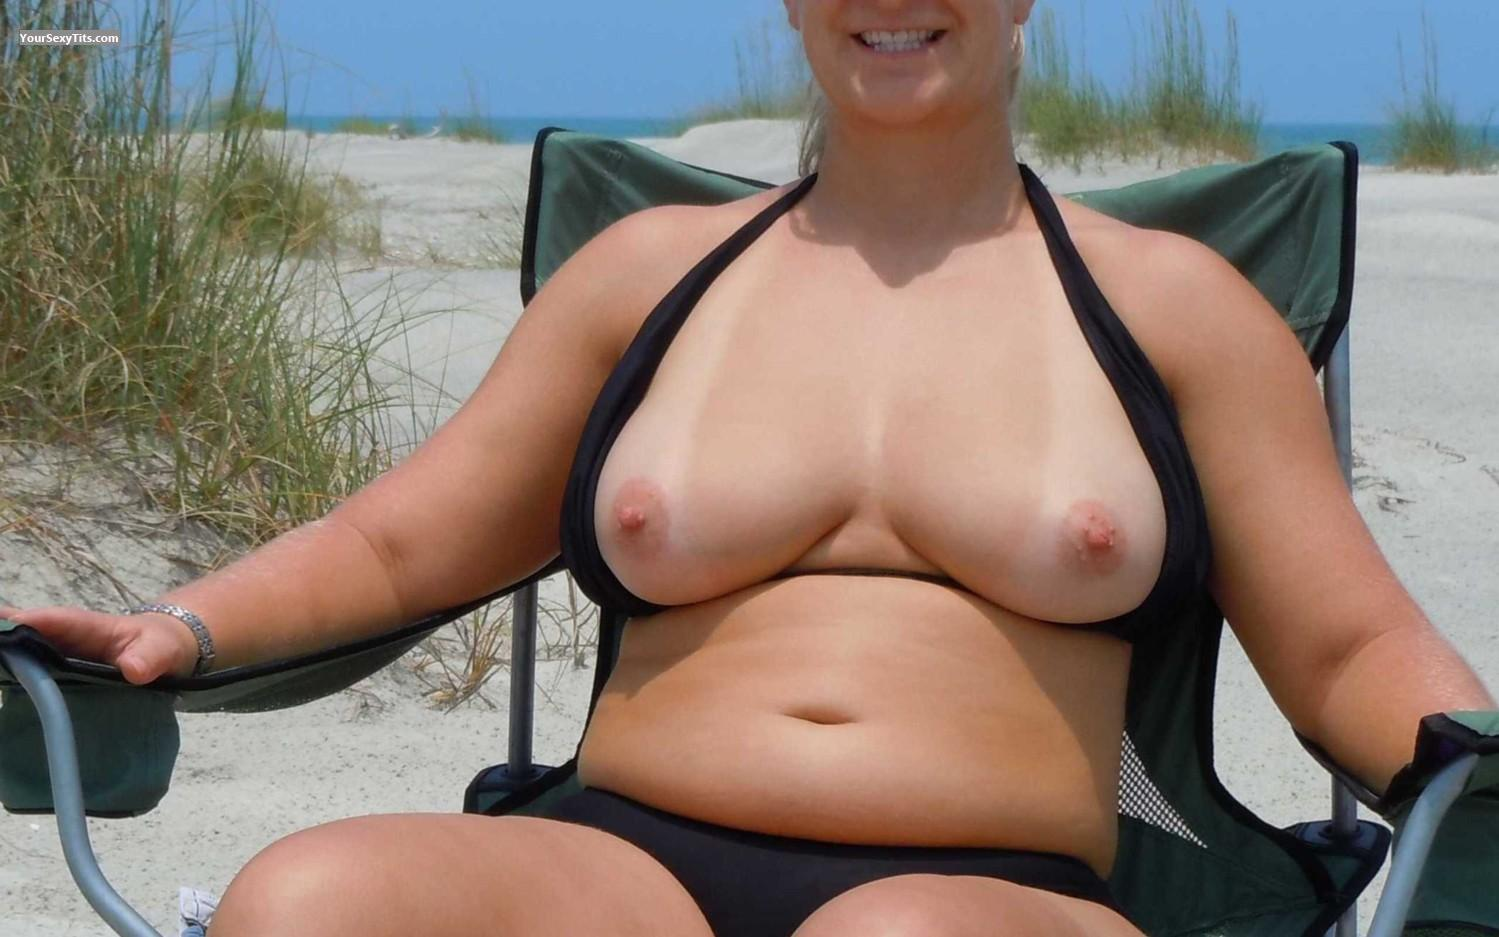 Tit Flash: Medium Tits - Faans Flasher - Beach Chilli from United States